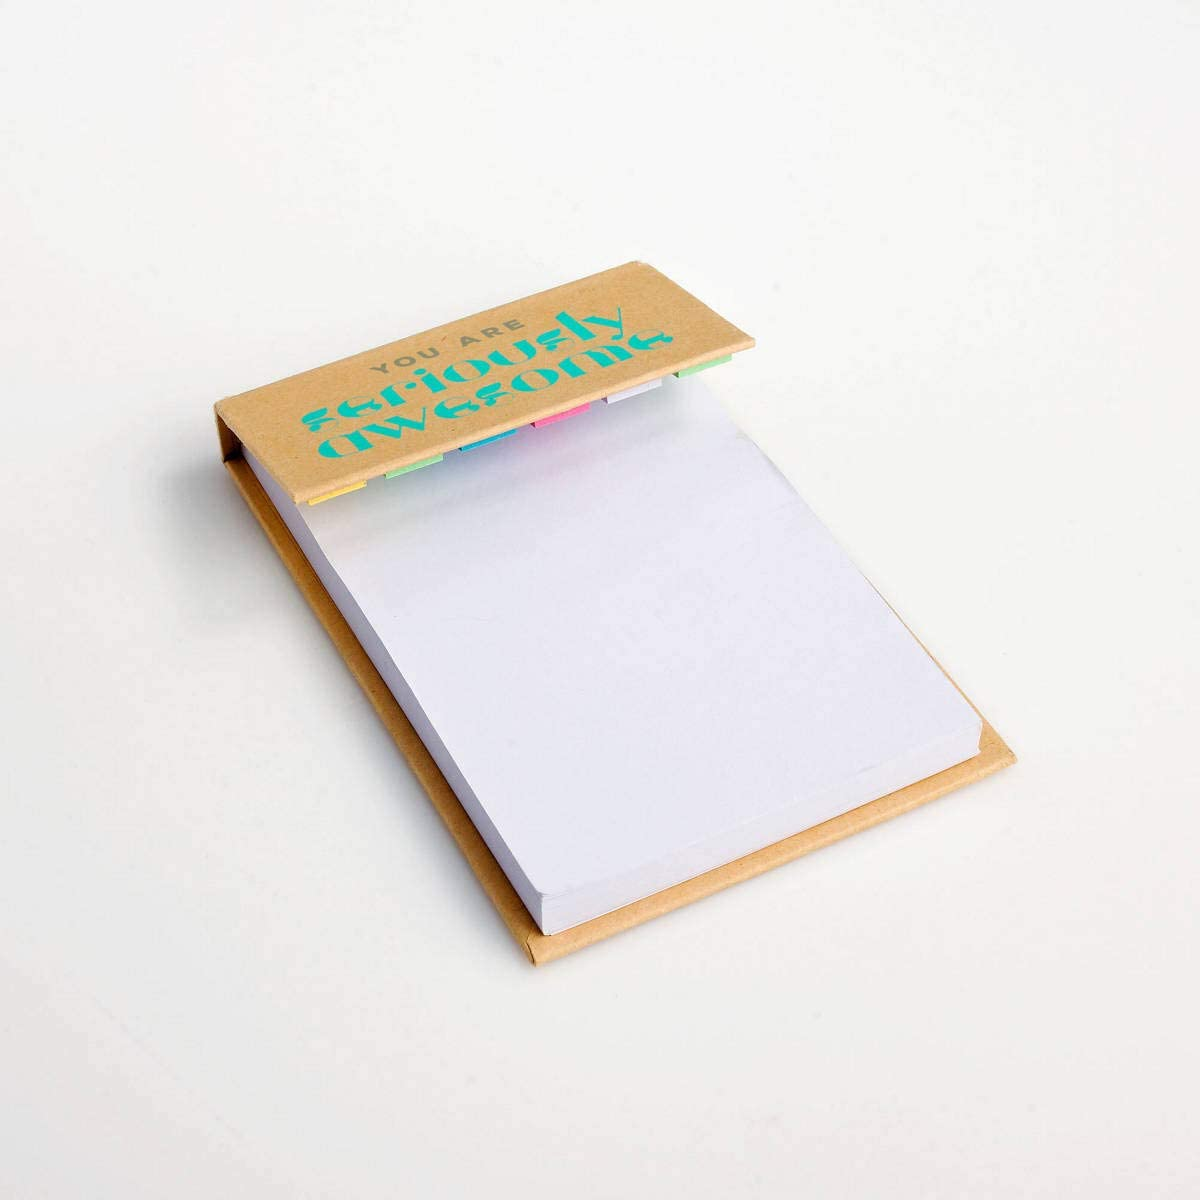 5 Pack of Sticky Note Pads and Colorful Sticky Tabs for Employees//Staff Appreciation//Recognition Gifts//Awards 100 Sheet Pad of White Sticky Notes with 6 Colors of Sticky Tabs